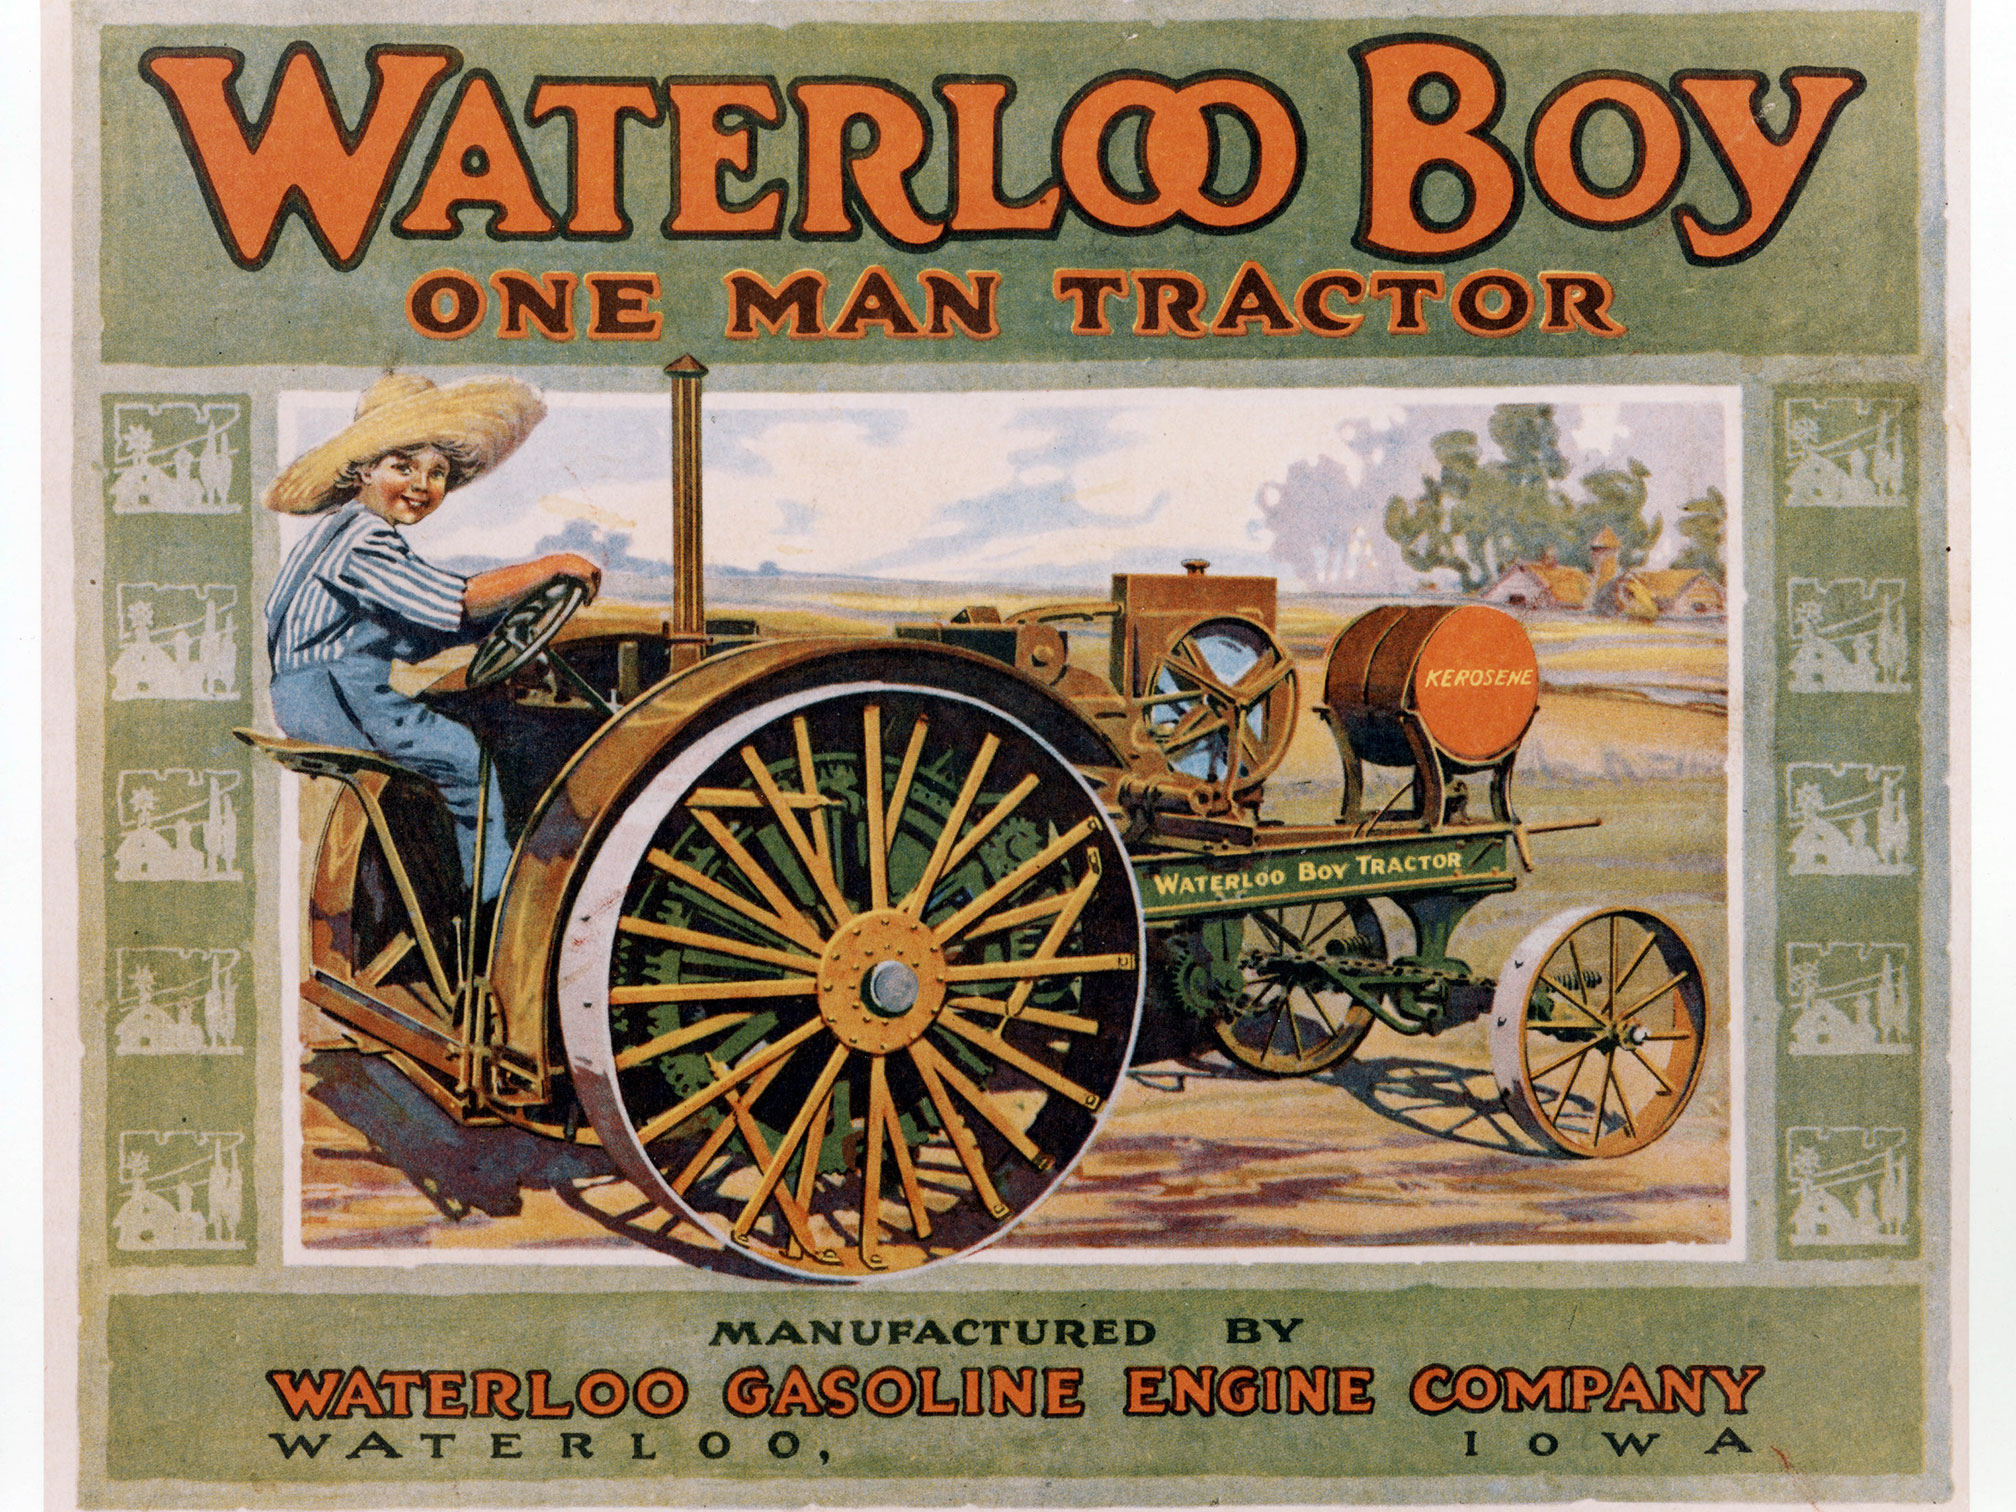 Waterloo Boy